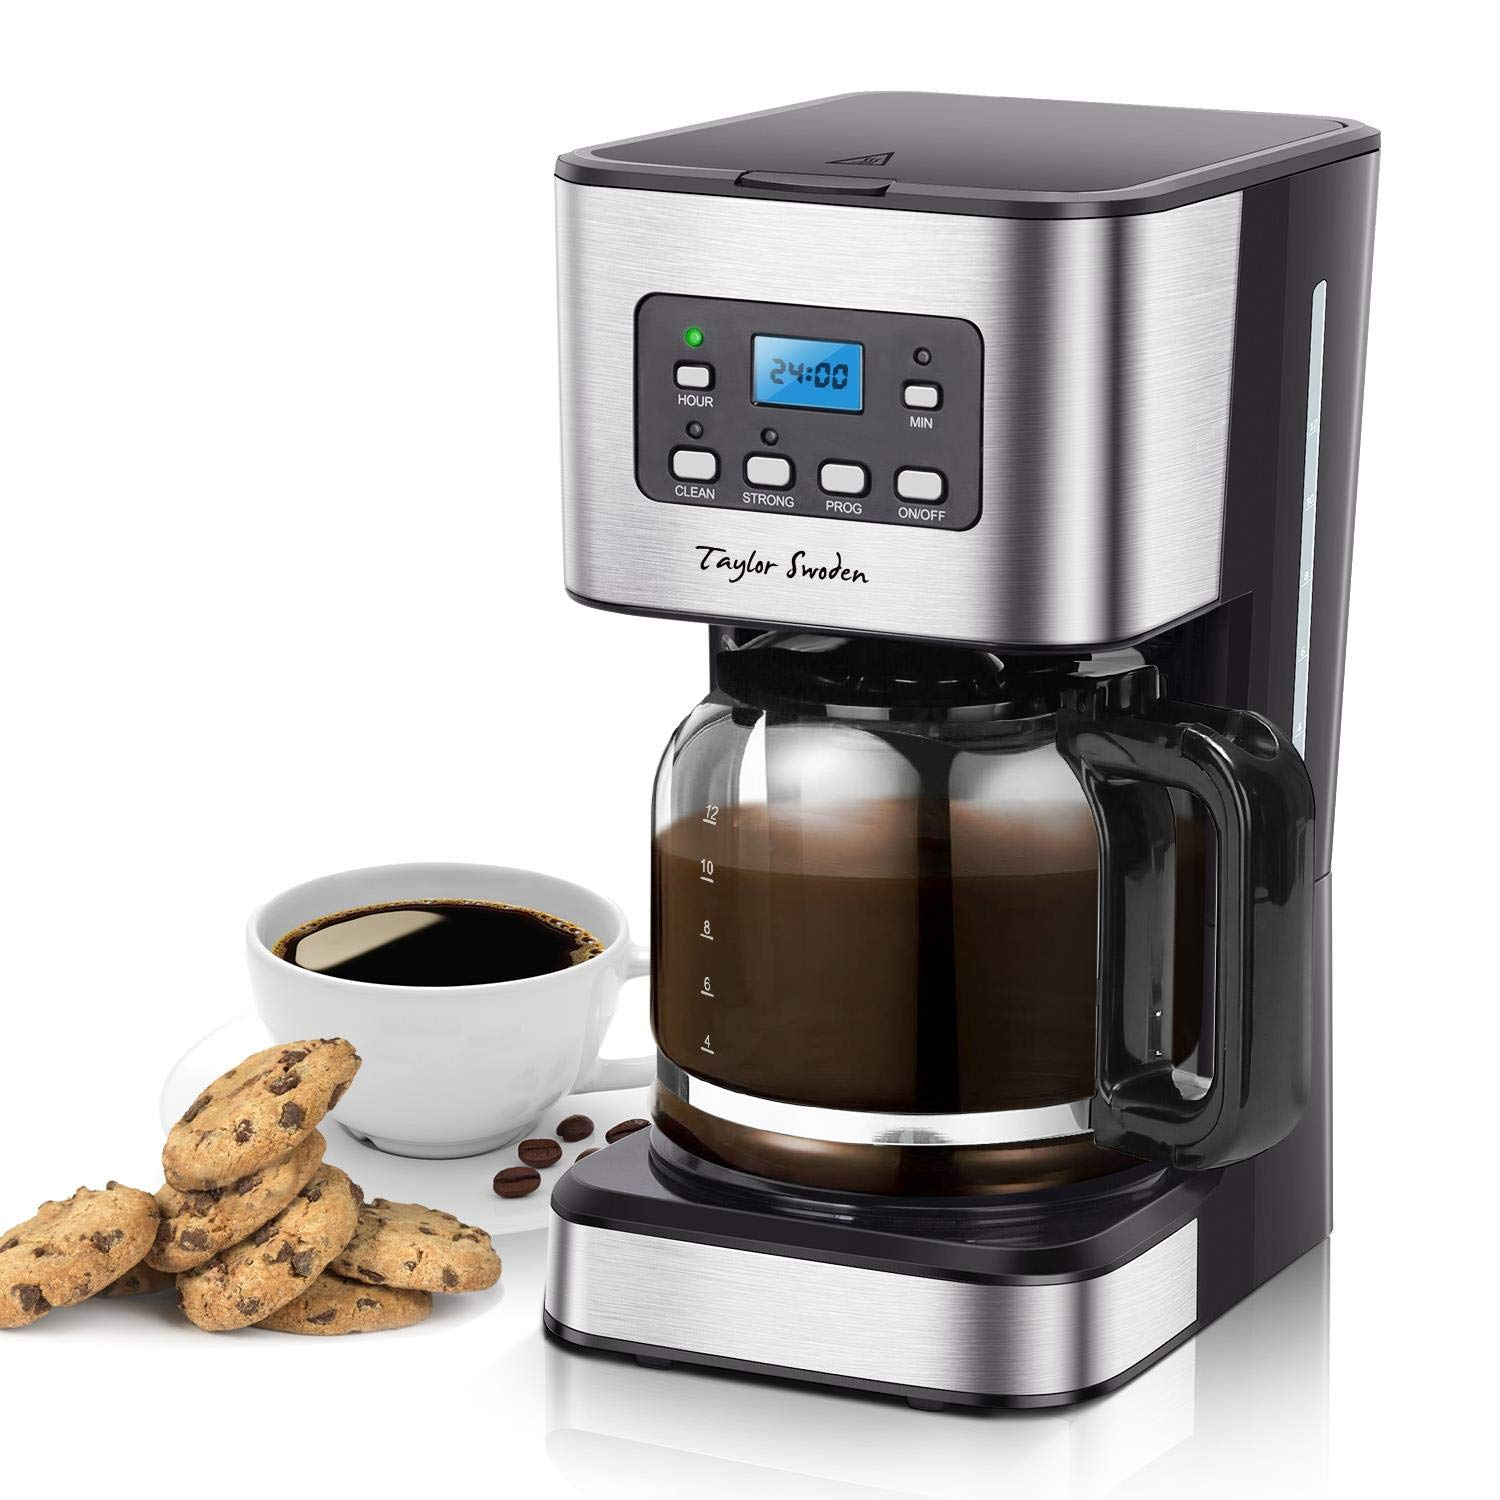 Taylor Swoden Darcy - Cafetera de goteo, 950W, pantalla LCD ...